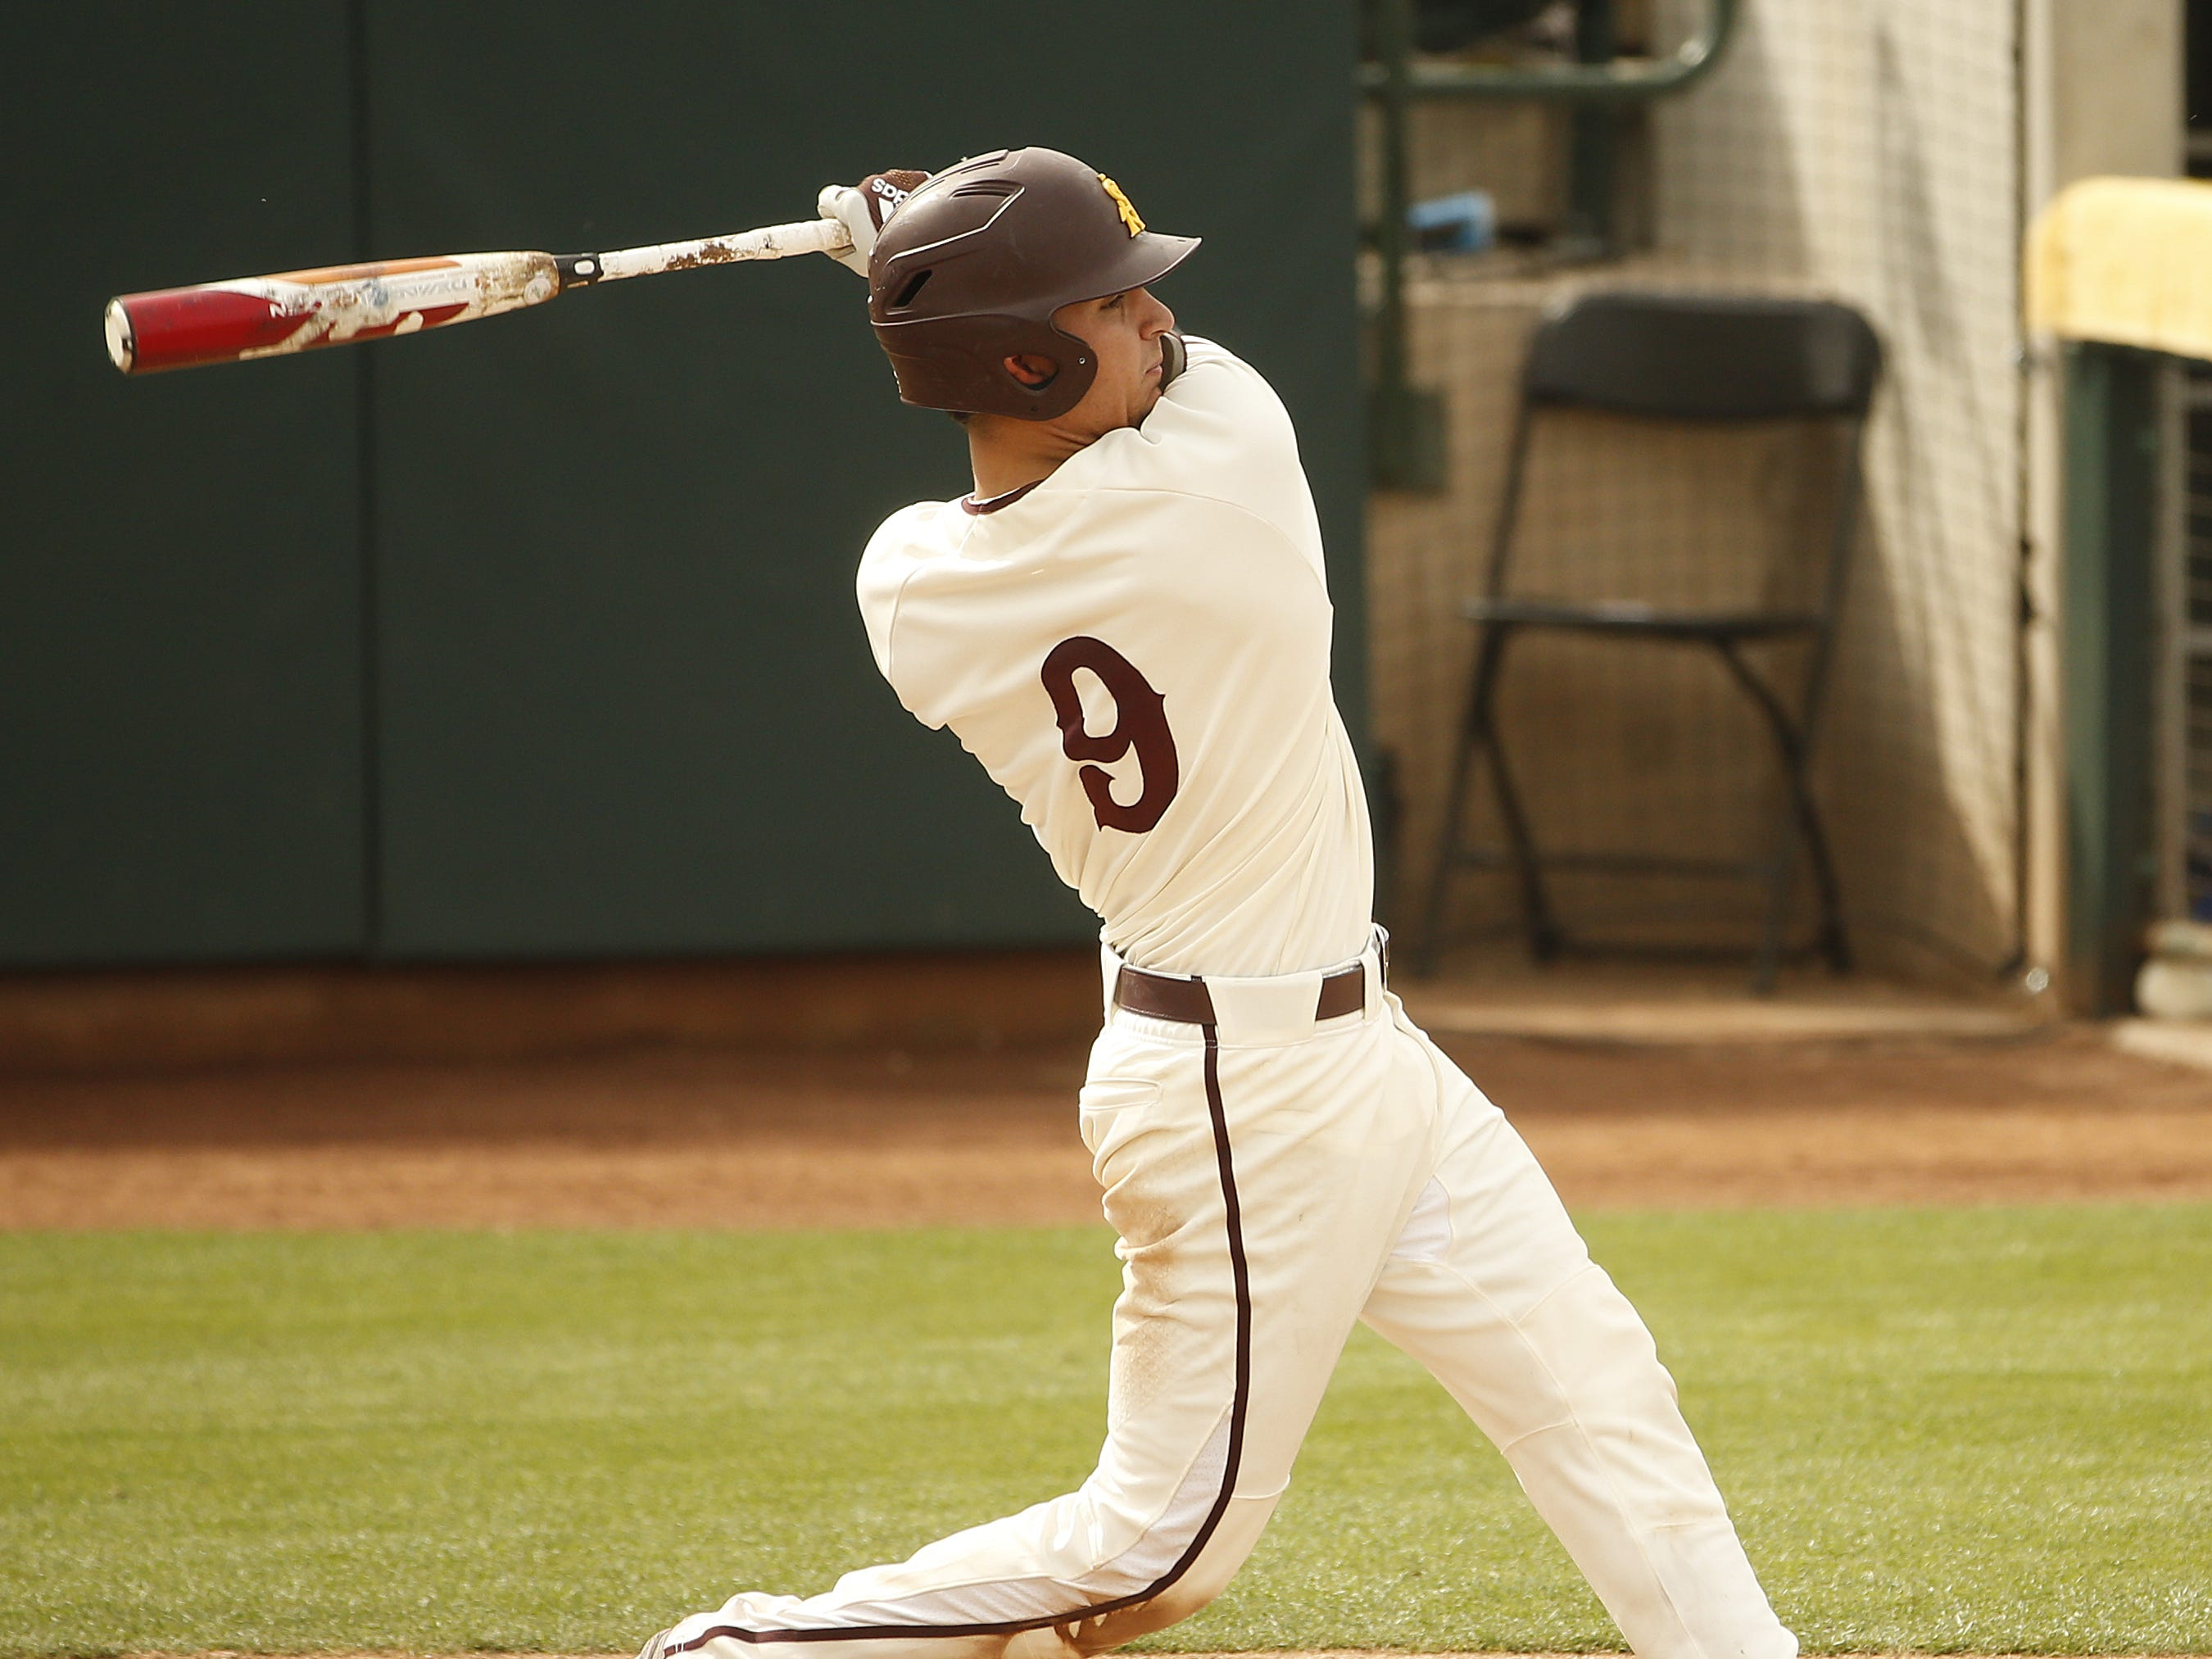 ASU's Sam Ferri (9) hits a fly out against UCLA at Phoenix Municipal Stadium in Phoenix, Ariz. on May 5, 2019.